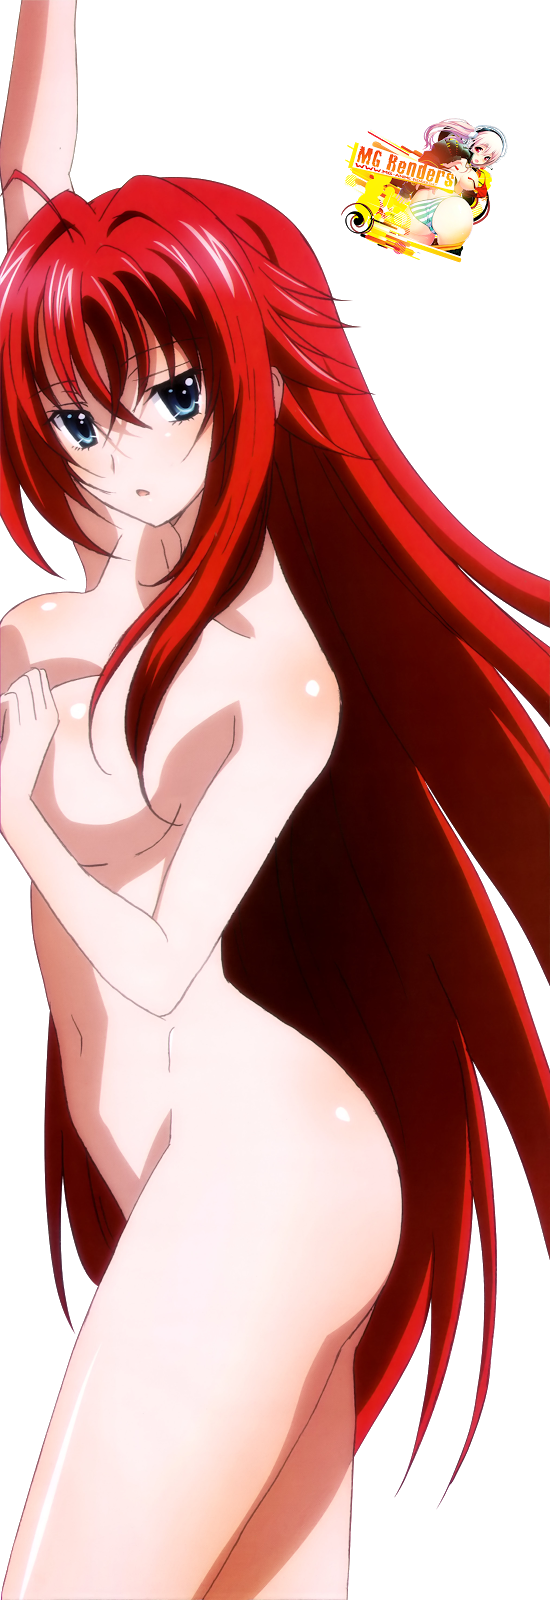 Tags: Anime, Render,  High School DxD, ハイスクールD×D, Haisukūru D×D,  No bra,  Rias Gremory, リアス・グレモリー,  PNG, Image, Picture